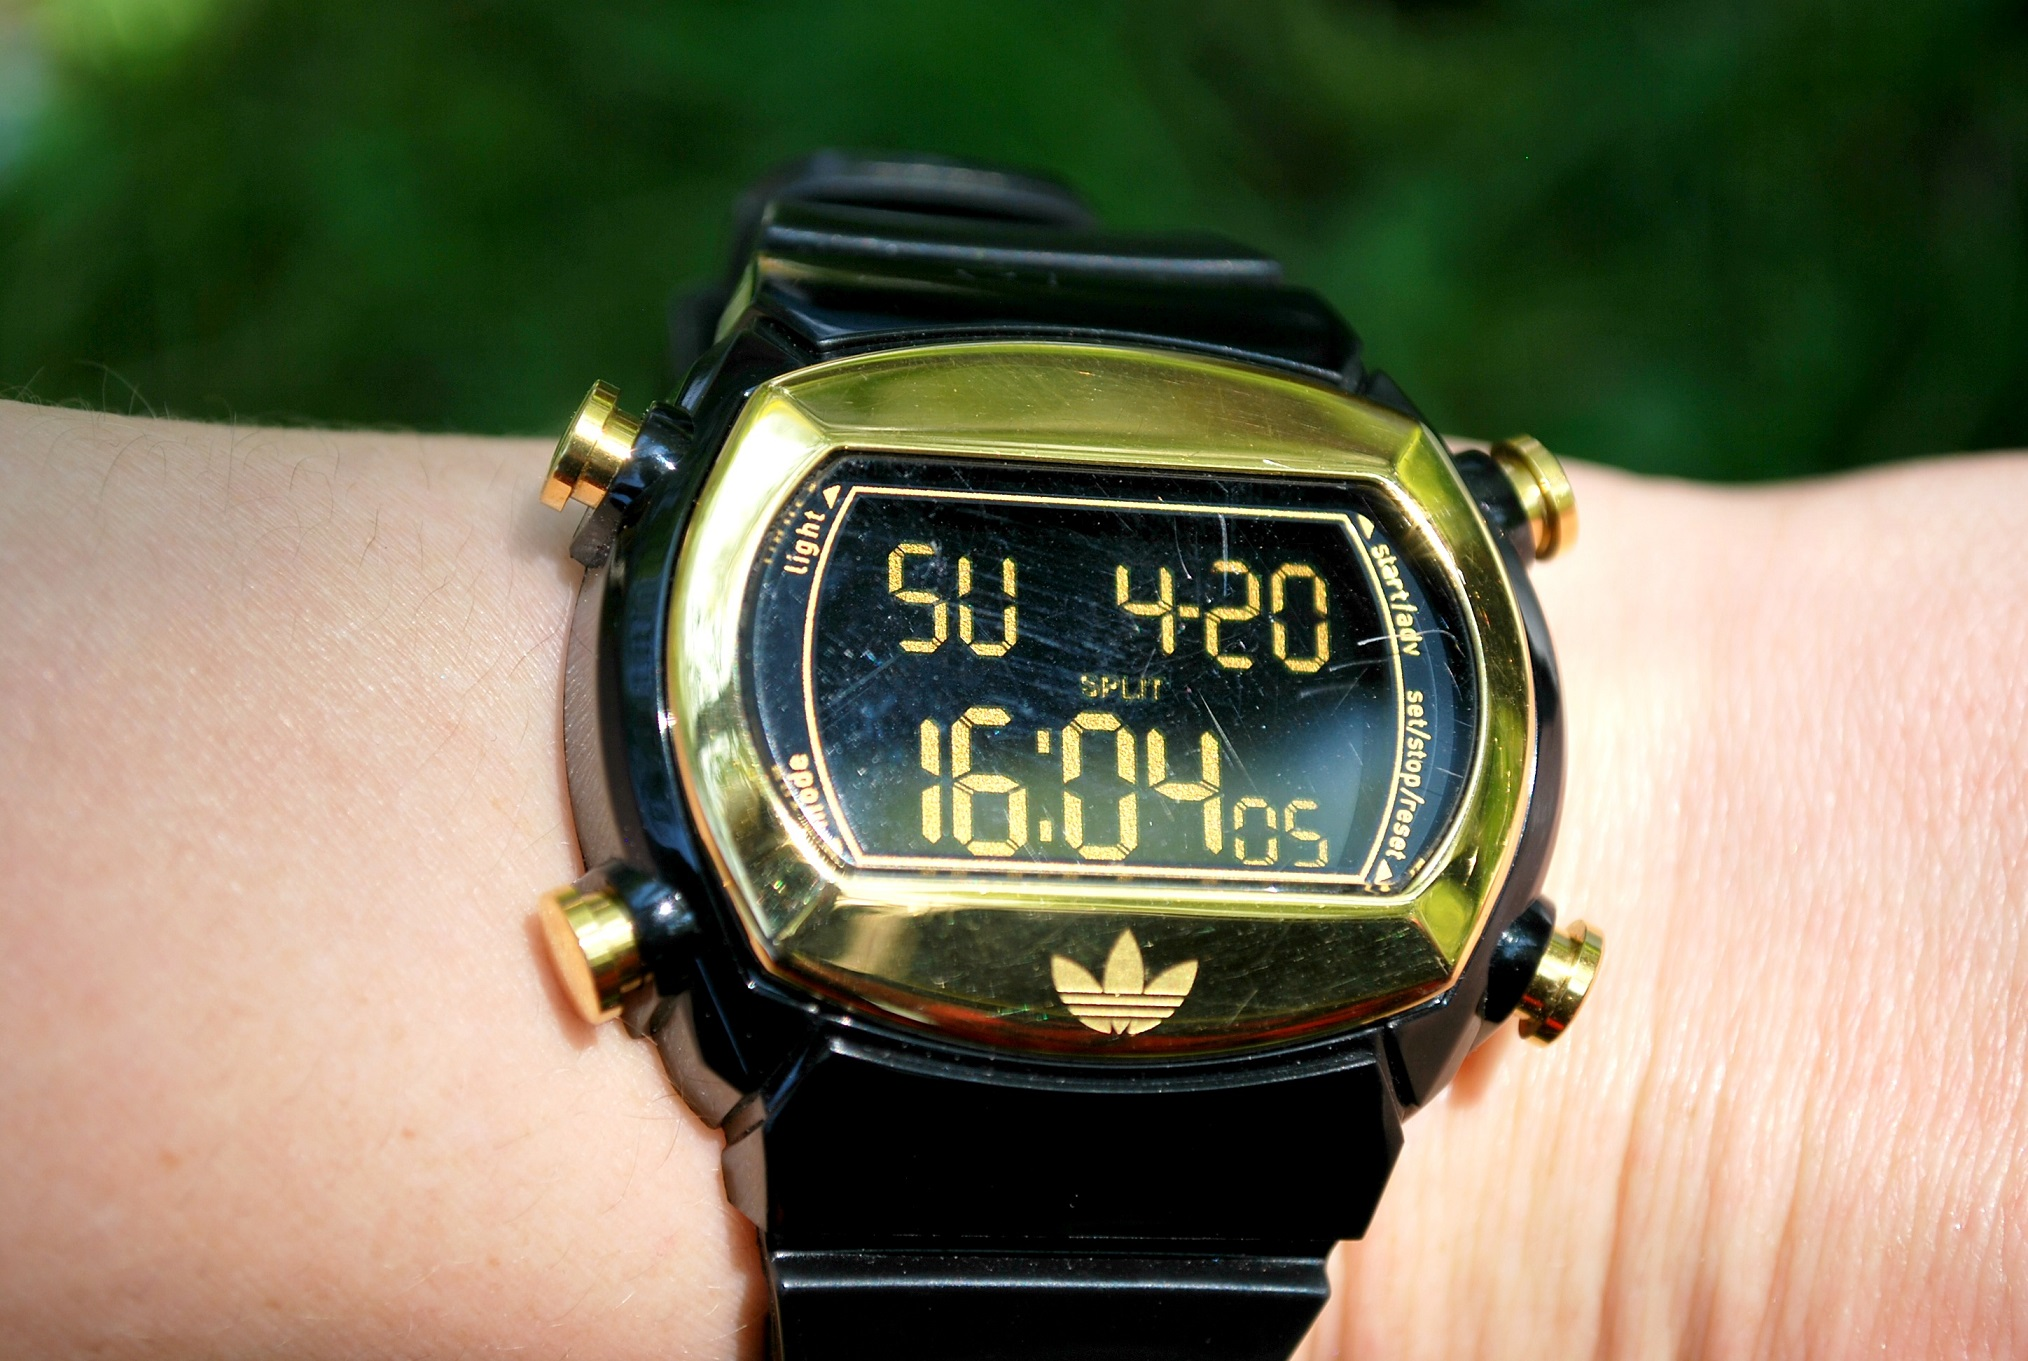 Zwart goud Adidas horloge black gold watch